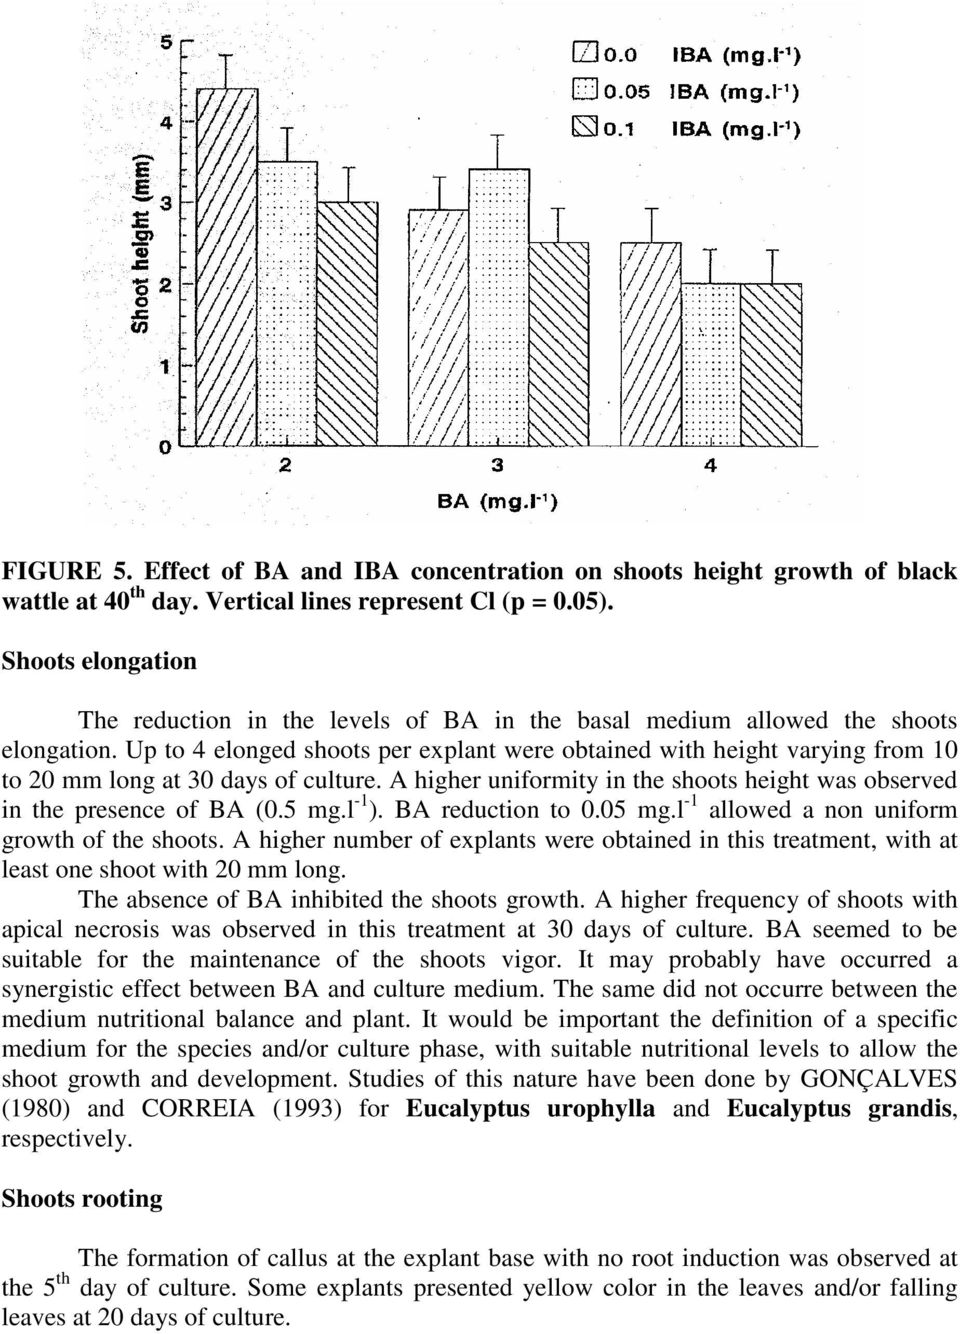 Up to 4 elonged shoots per explant were obtained with height varying from 10 to 20 mm long at 30 days of culture. A higher uniformity in the shoots height was observed in the presence of BA (0.5 mg.